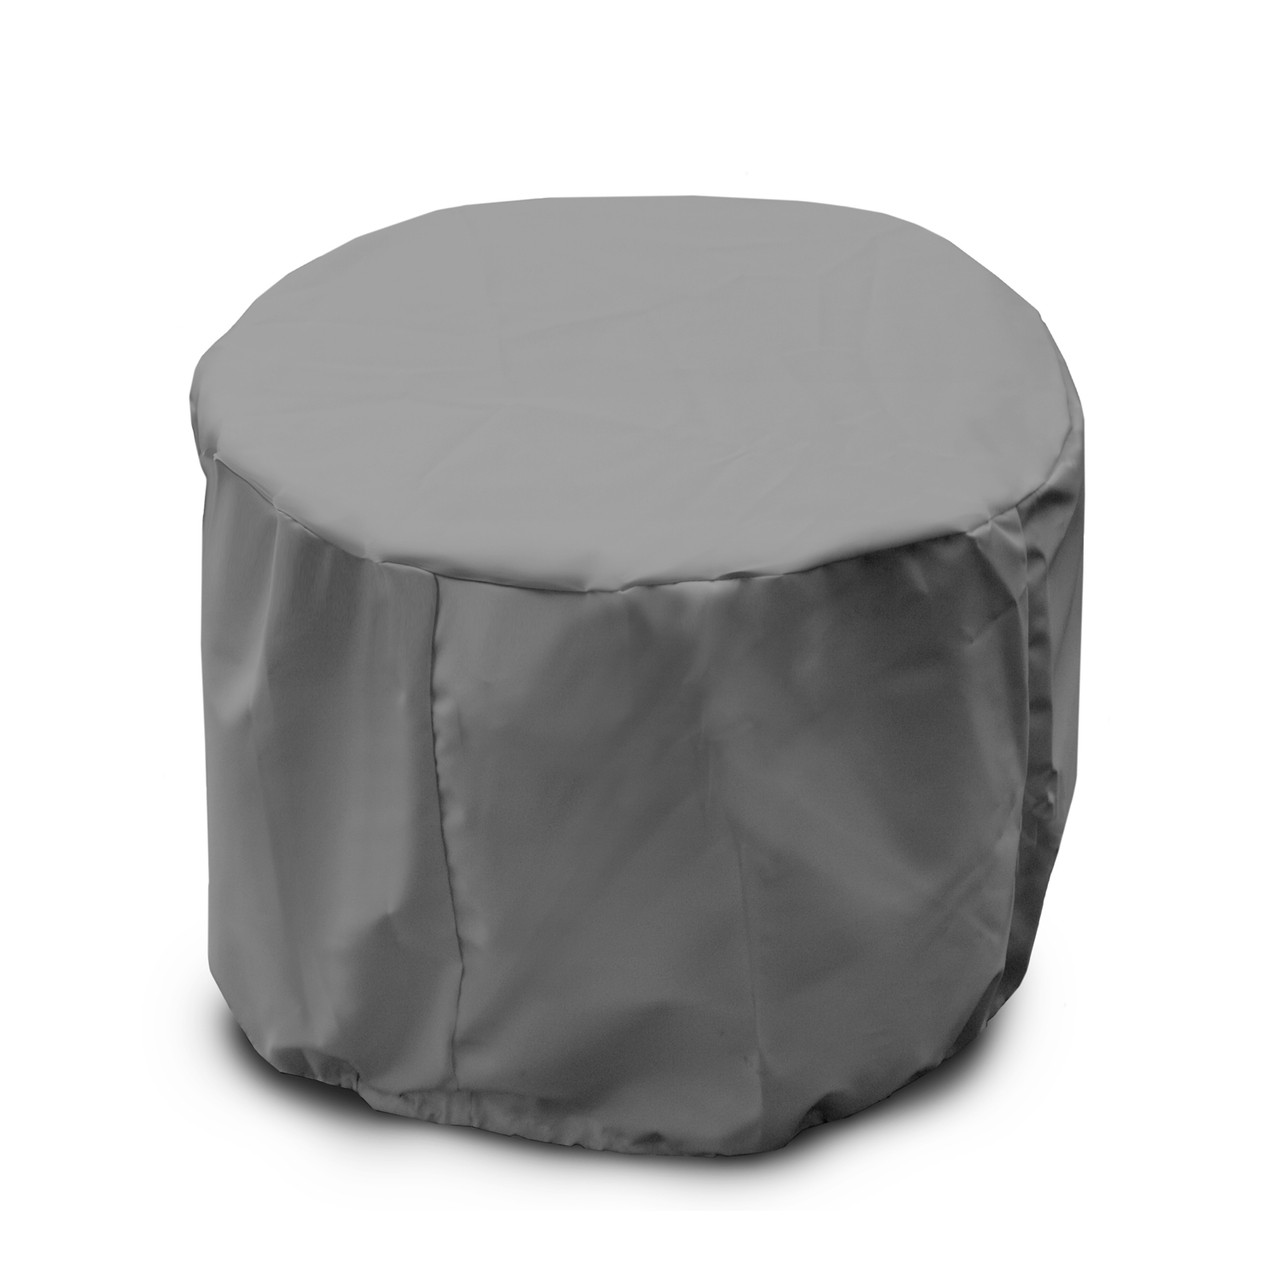 Outdoor Round Small Table Cover - Round Small Table Cover - Outdoor Furniture Covers